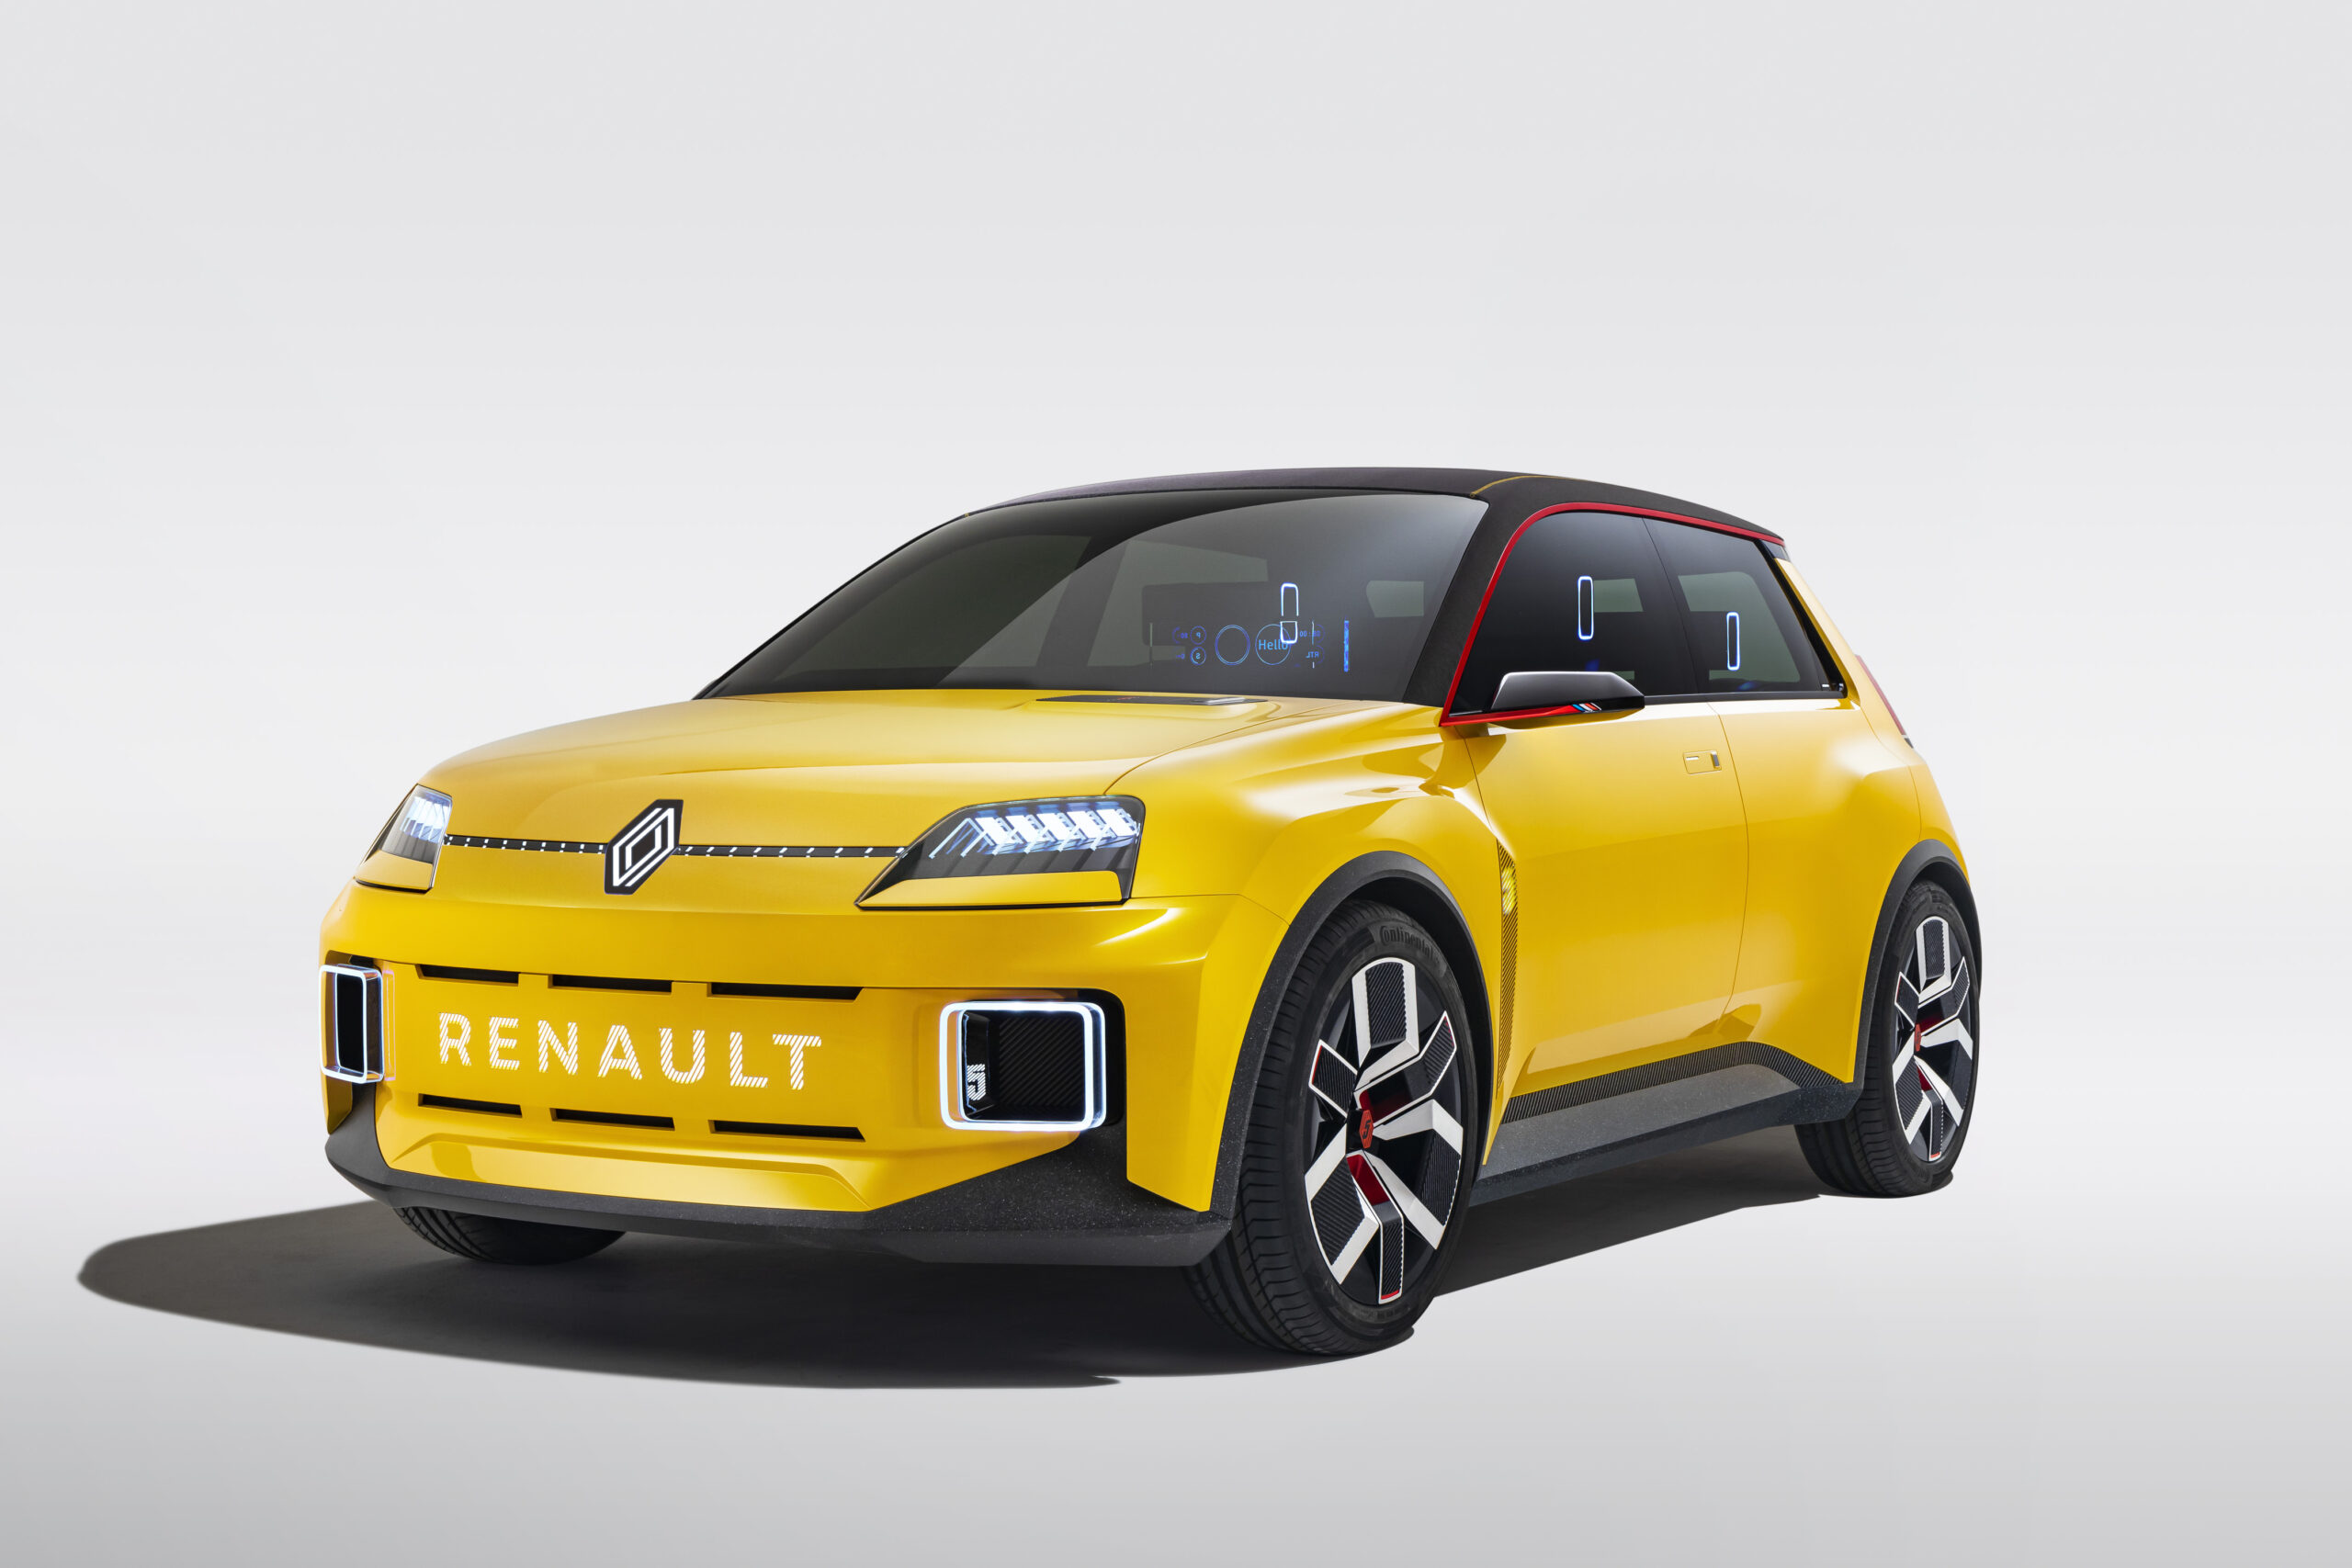 Renault 5 Prototype | © Groupe Renault 2020